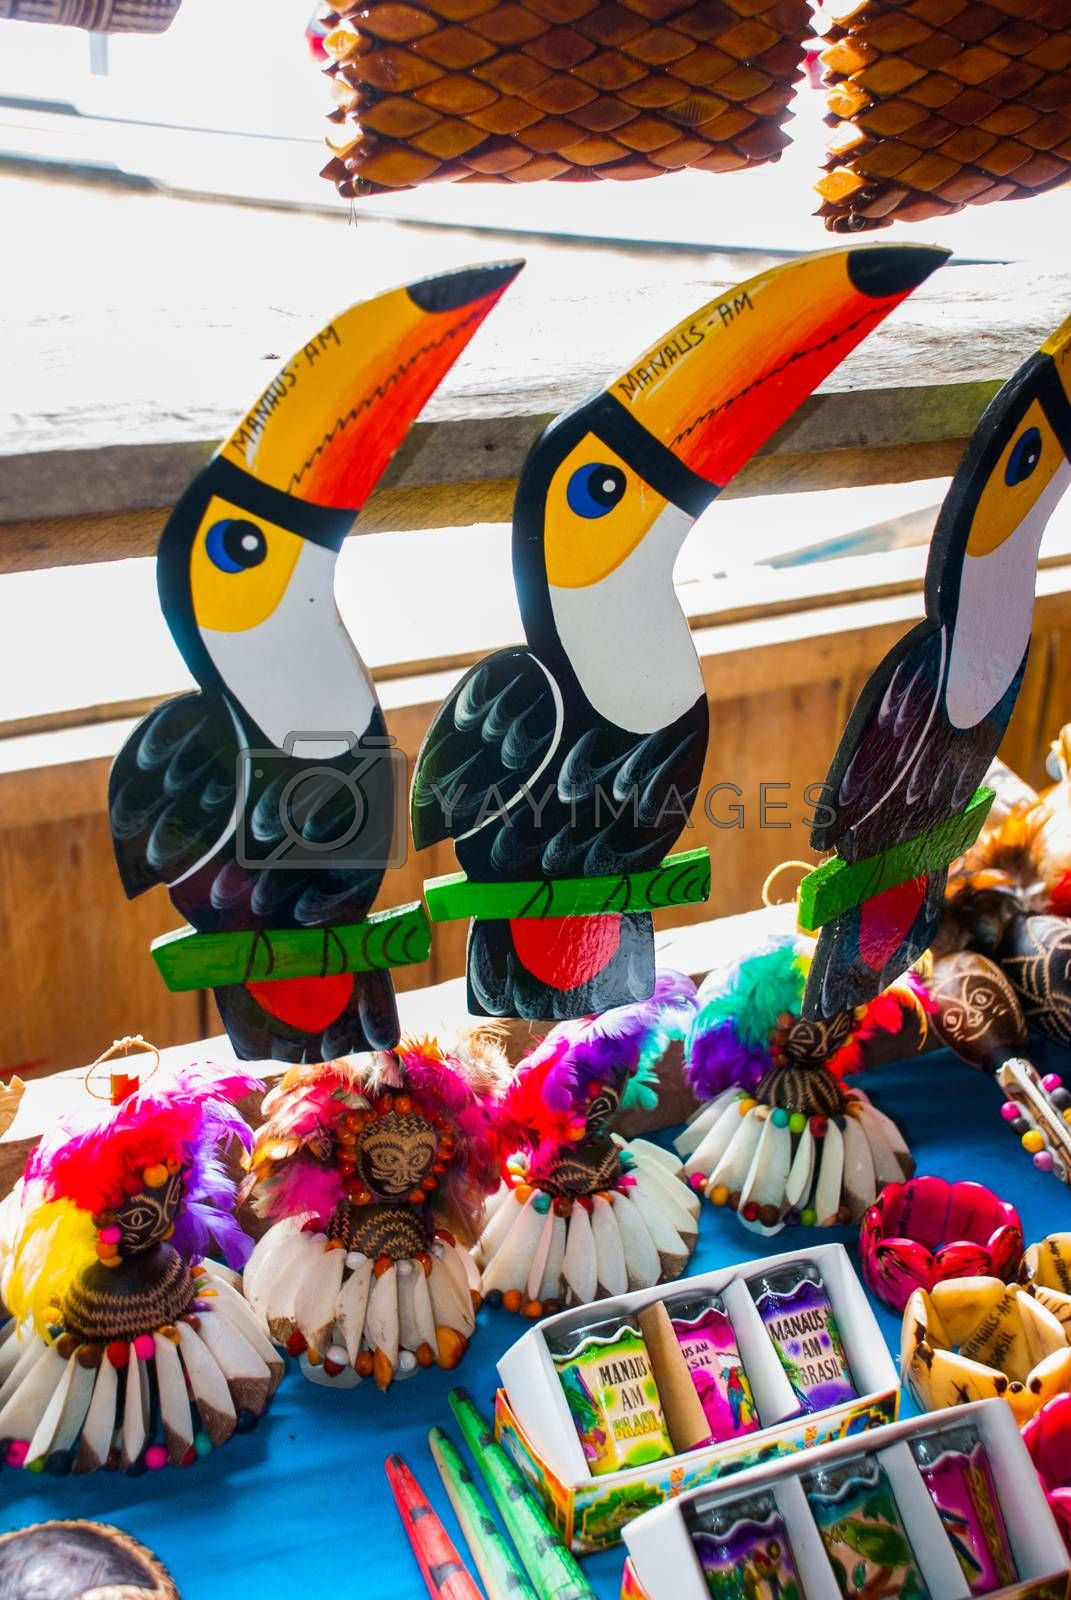 Souvenirs in the Amazon rainforest made from local nuts and animals near Iquitos. Market for tourists on the Amazon river. Manaus, Amazonas, Brazil